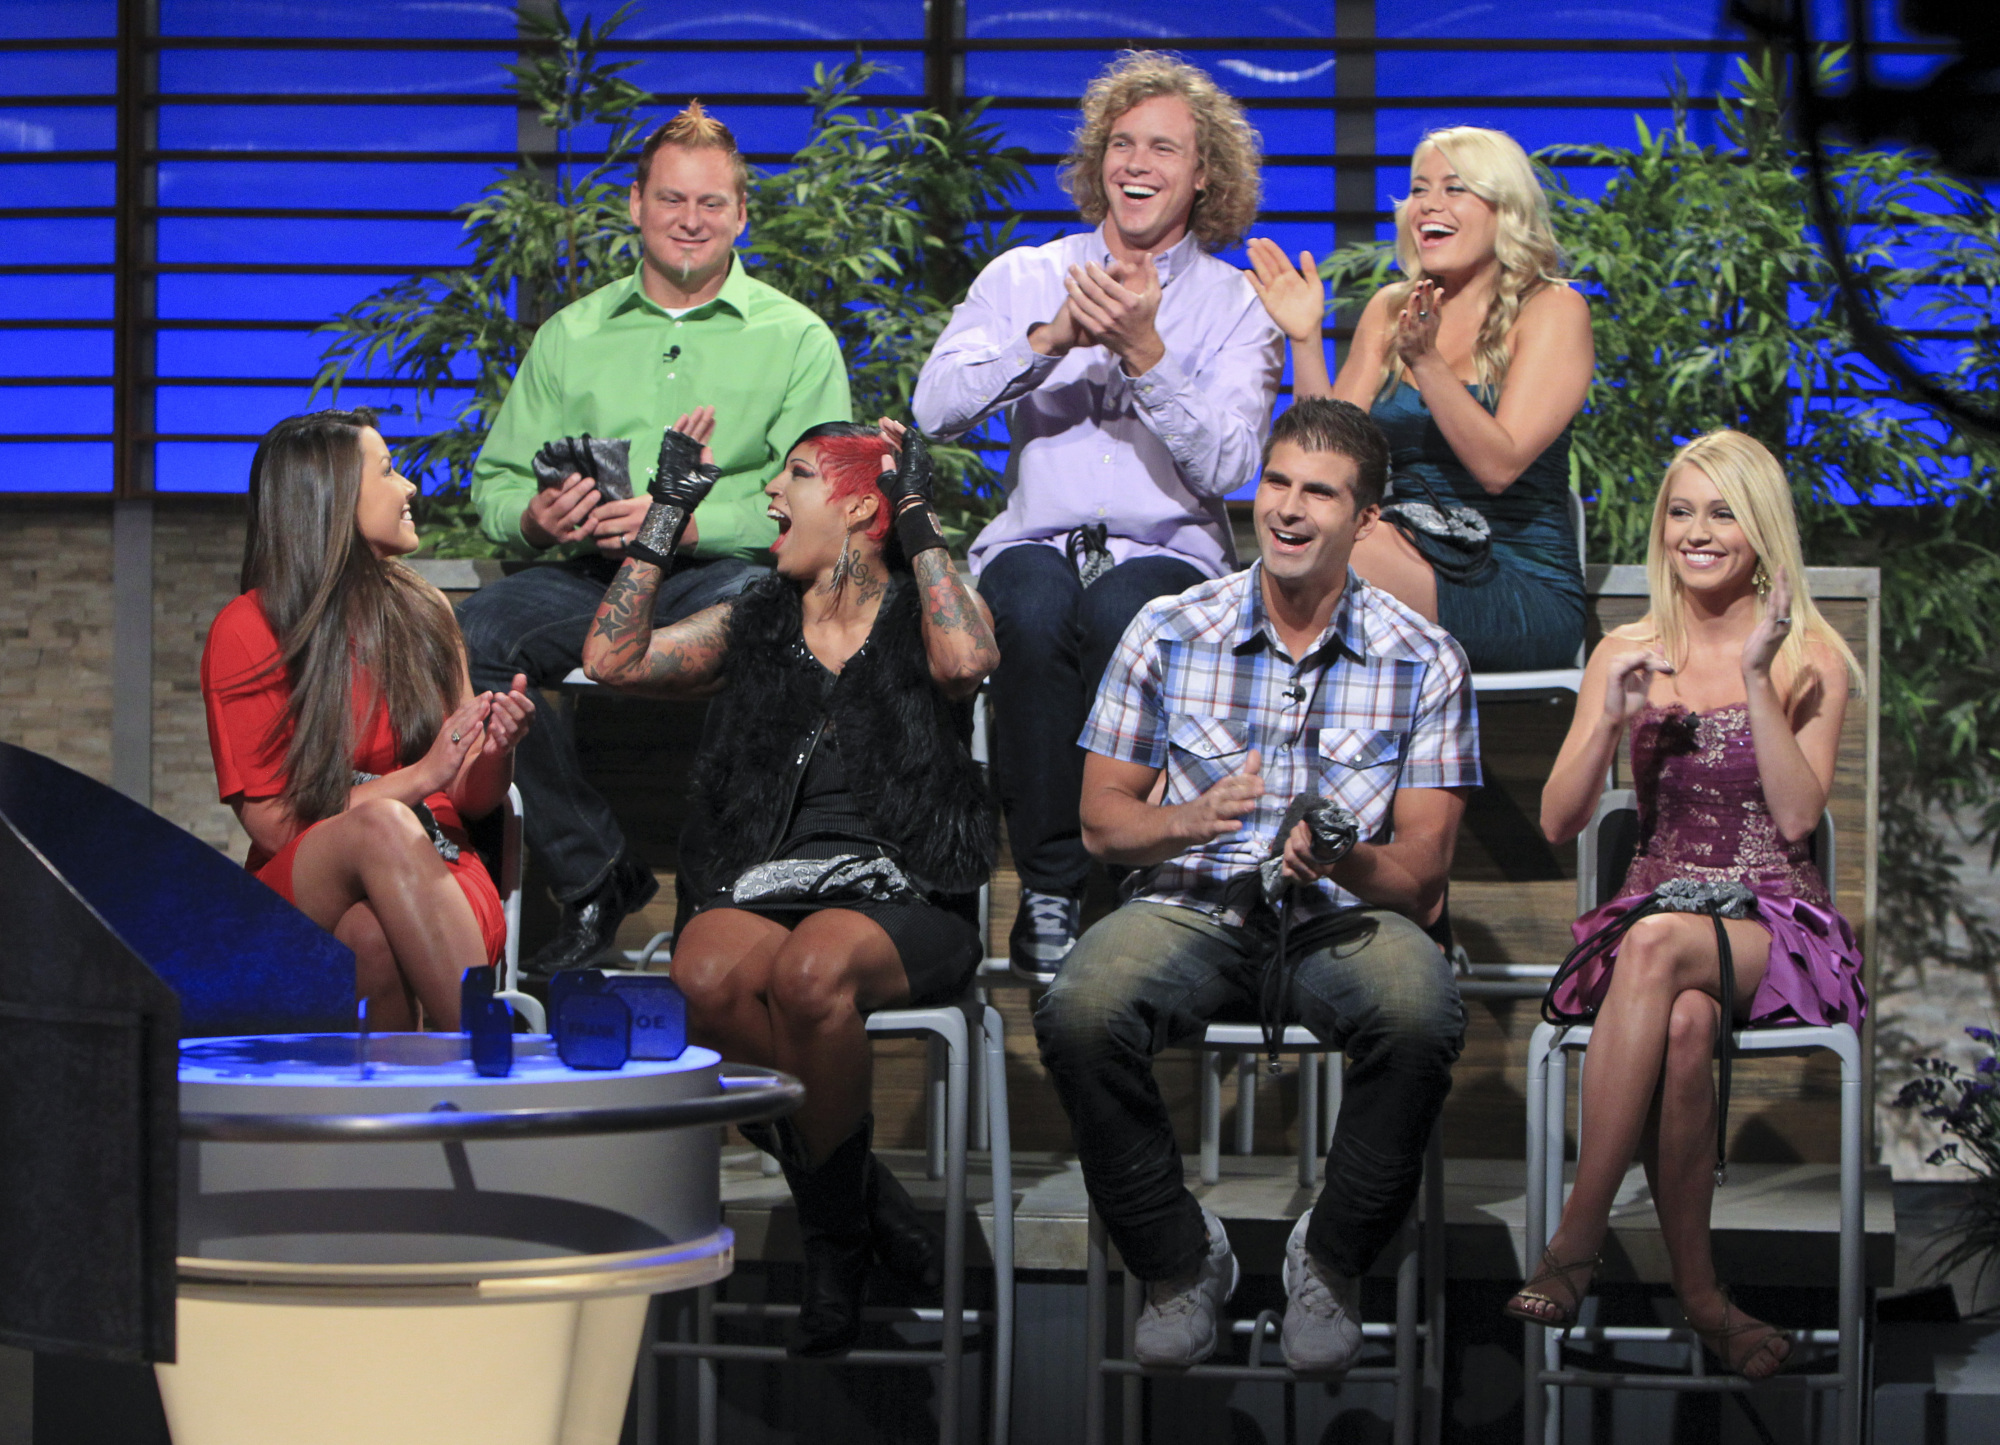 The Big Brother Jury